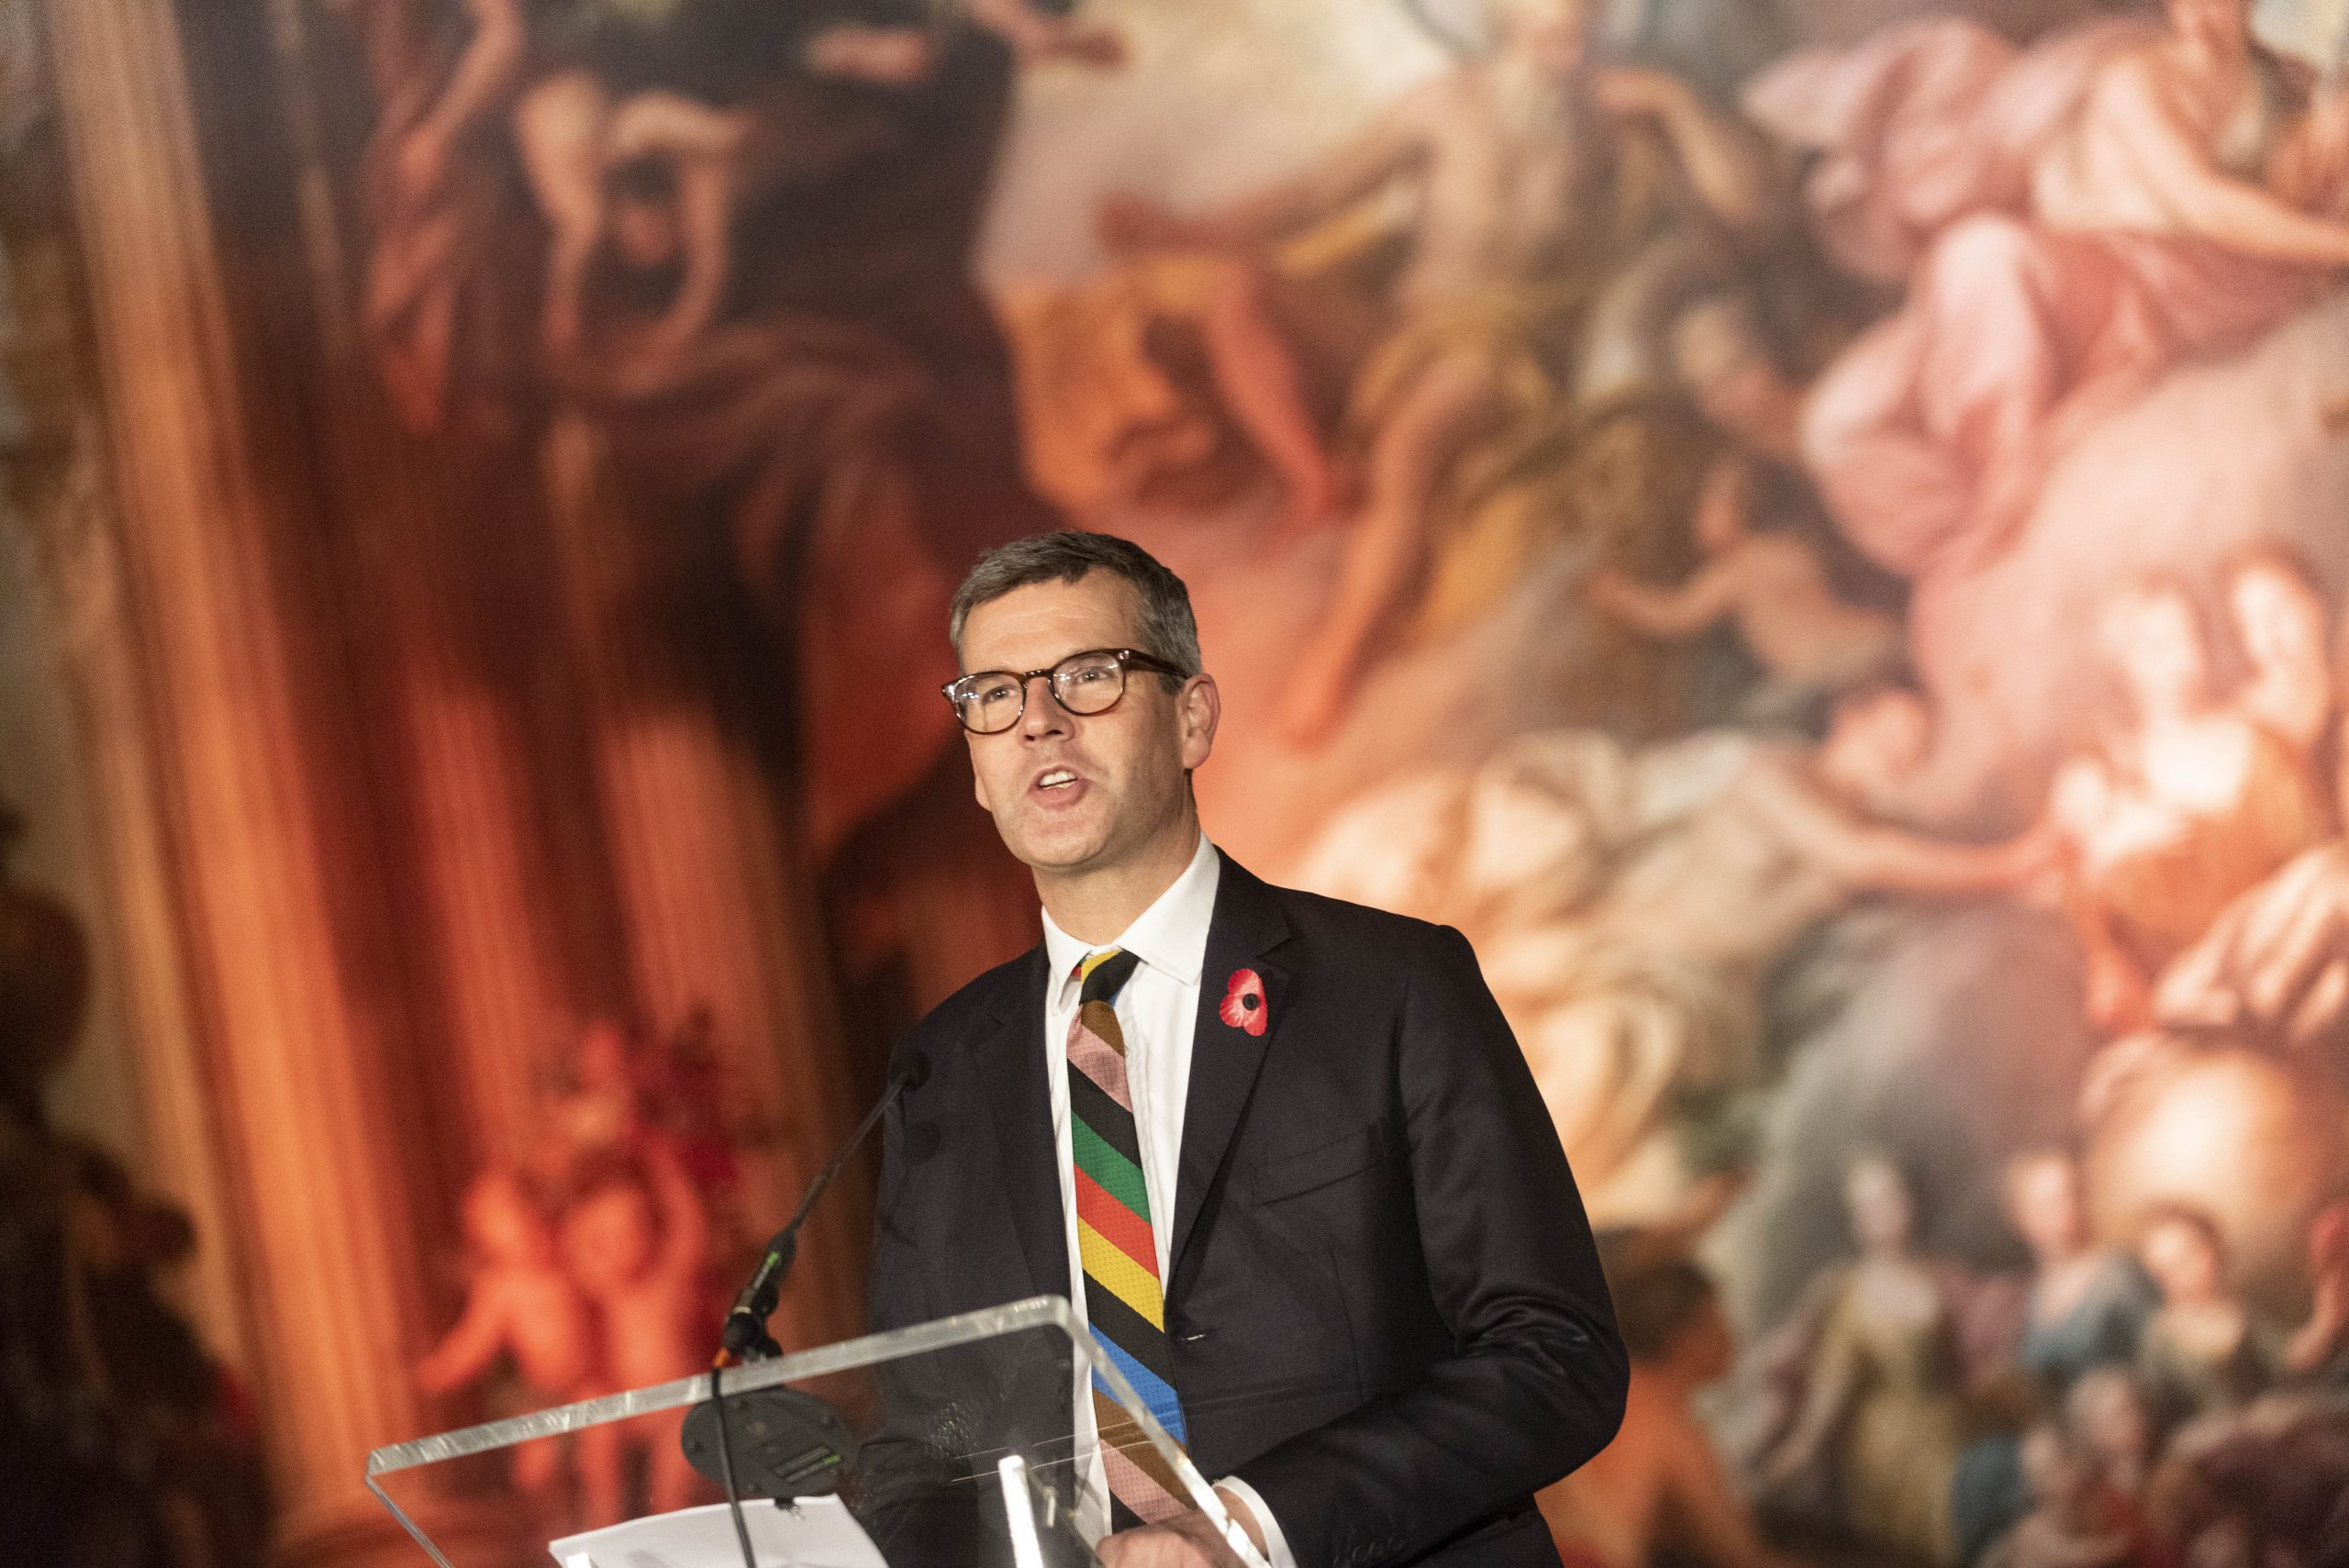 Ben Pentreath speaking to the DLN at the Painted Hall, at Greenwich, during the 2019 London Summit.